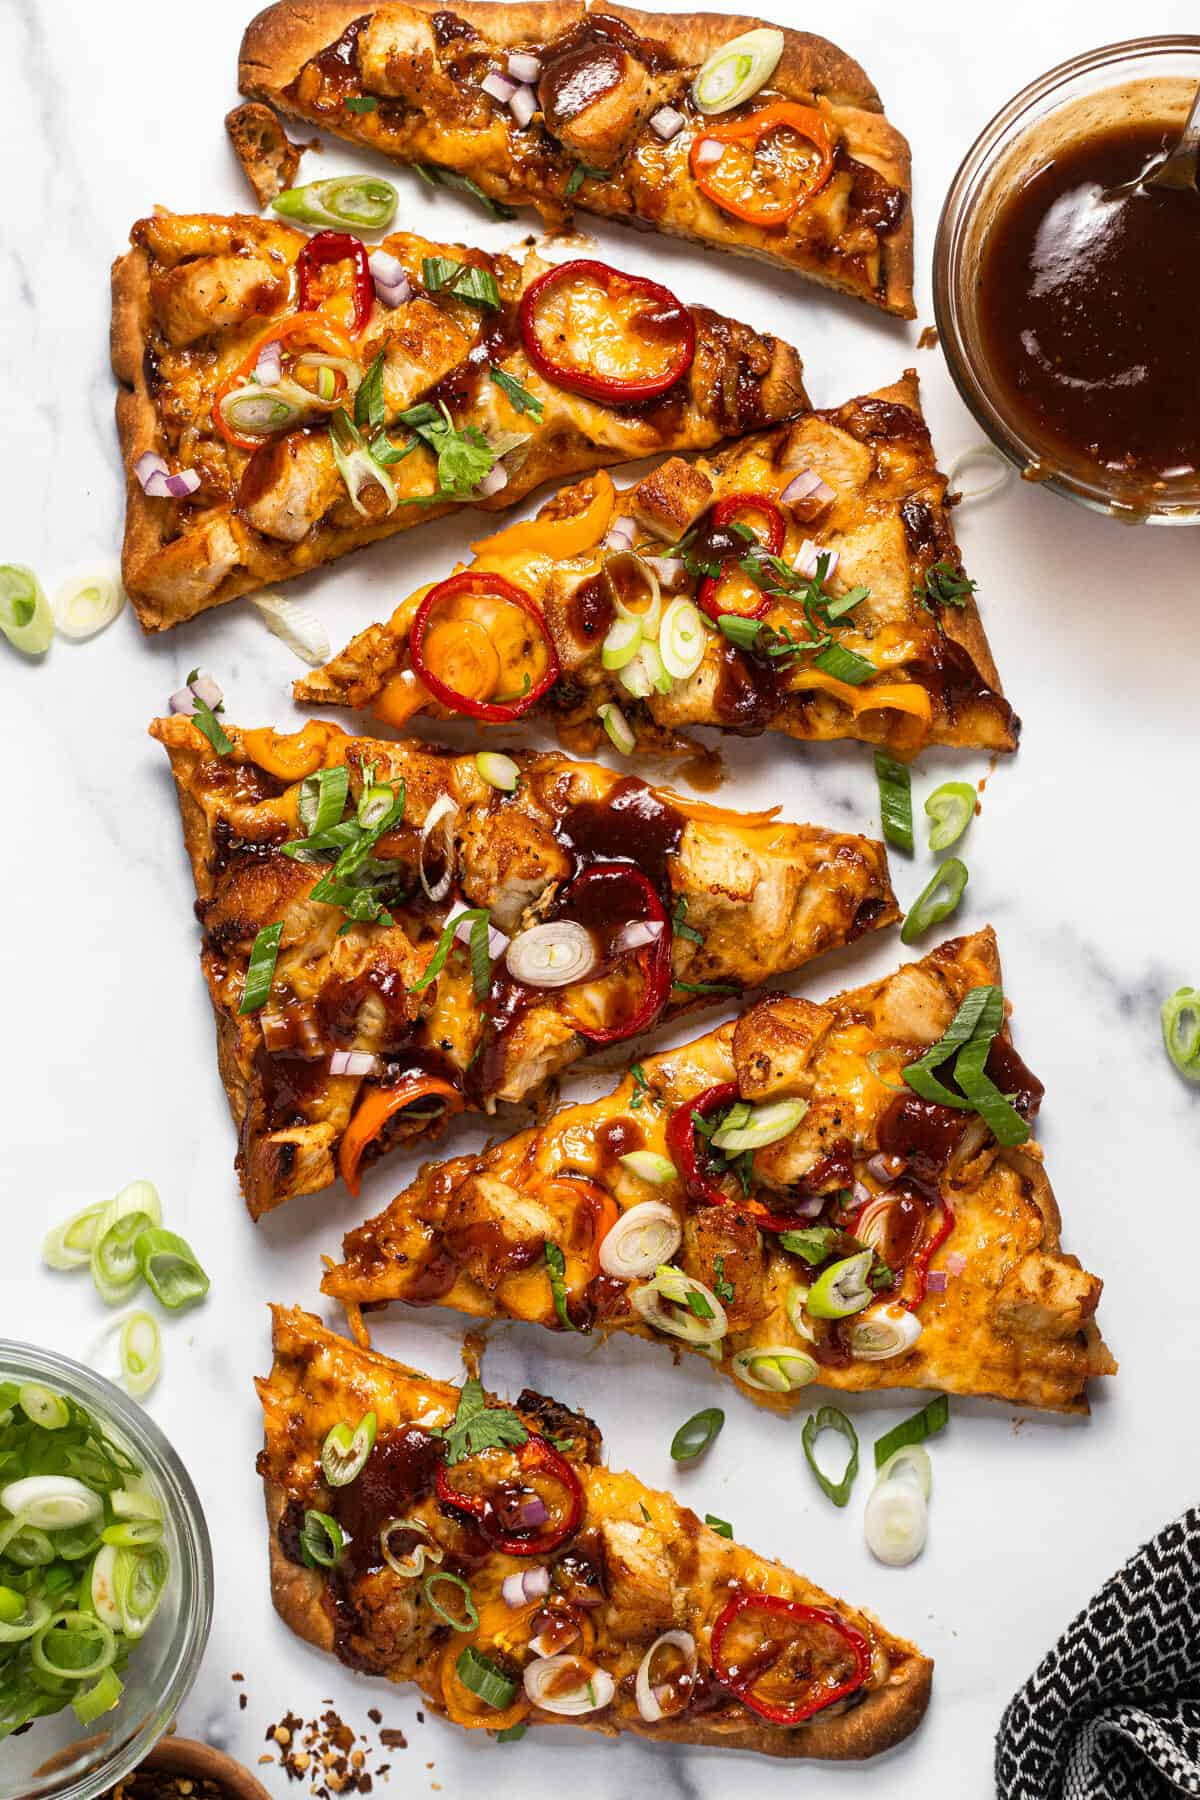 BBQ chicken flatbread garnished with sliced green onion on a white marble countertop